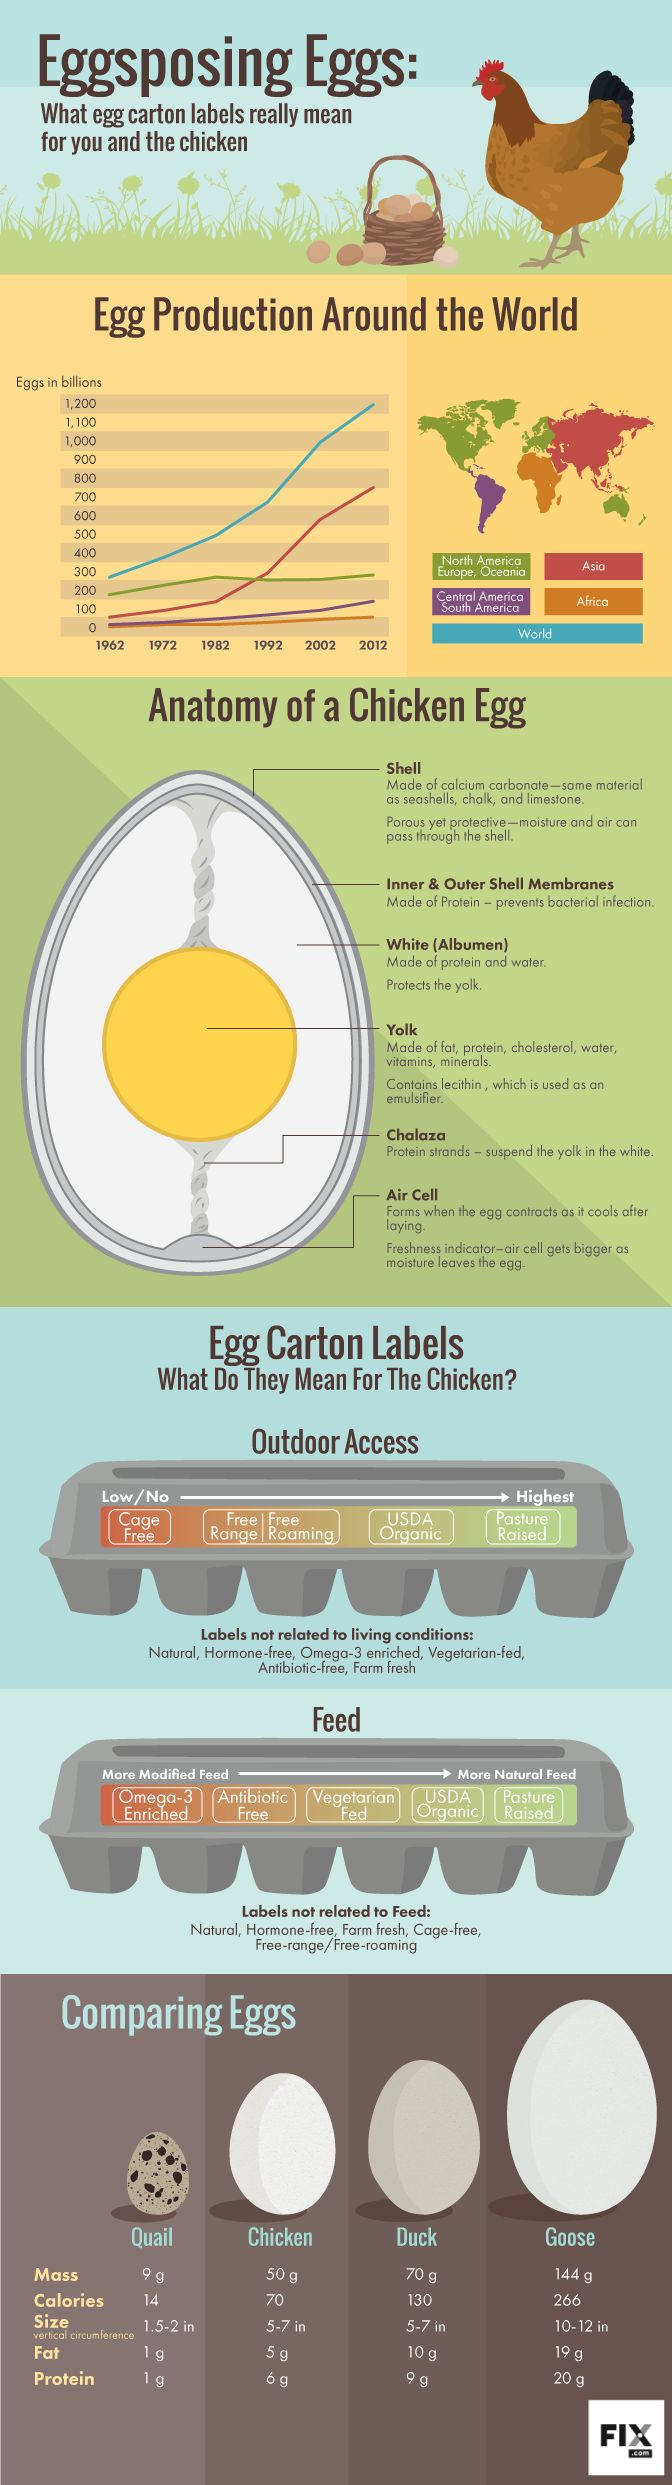 The article contains additional info - It covers the certifying organizations, not just the labels. Learn which egg carton labels and certification stamps are most meaningful for the welfare of laying hens, so you can make informed purchases.